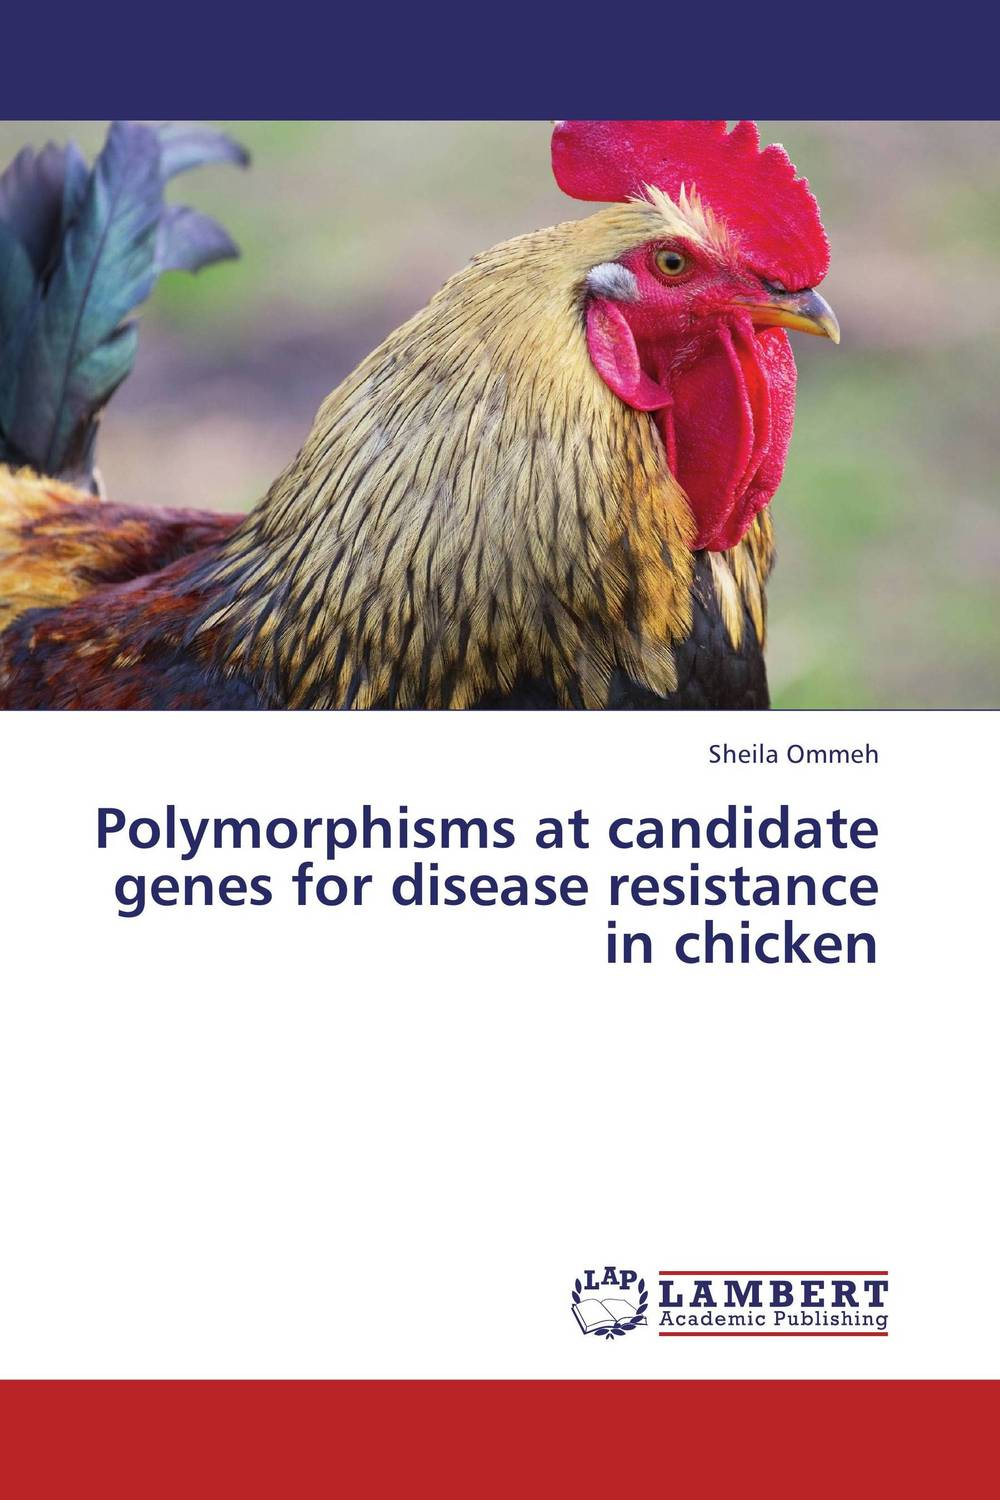 Polymorphisms at candidate genes for disease resistance in chicken gene polymorphisms in inflammatory and immune related diseases